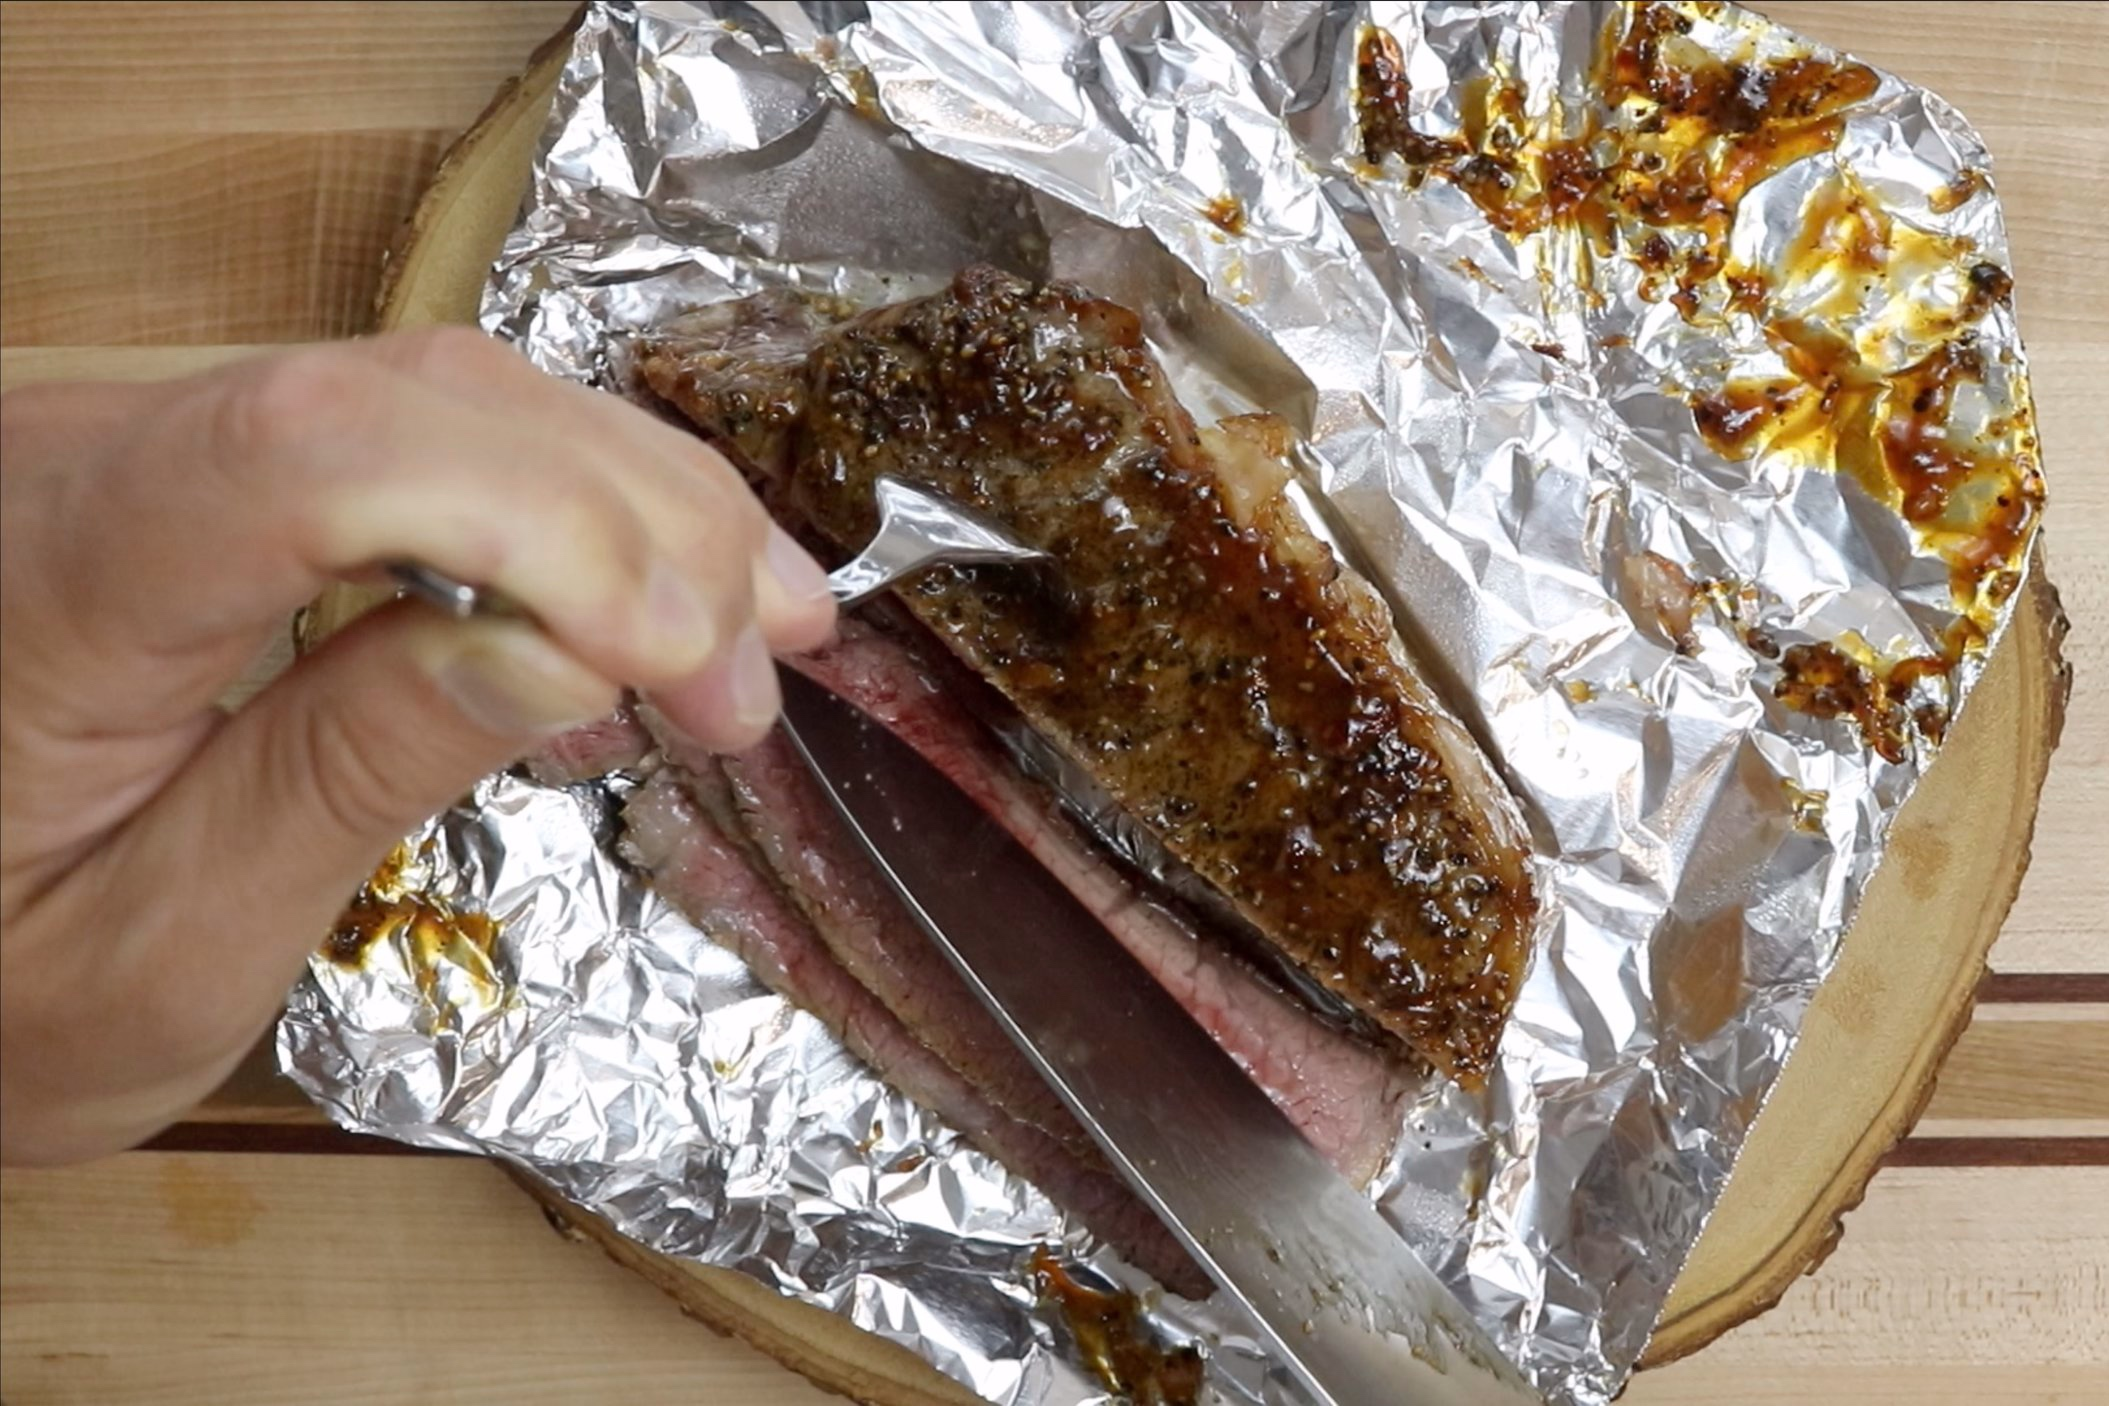 13. Remove veggies from oven and slice steak against the grain into thin strips. Serve with coconut rice if desired. -